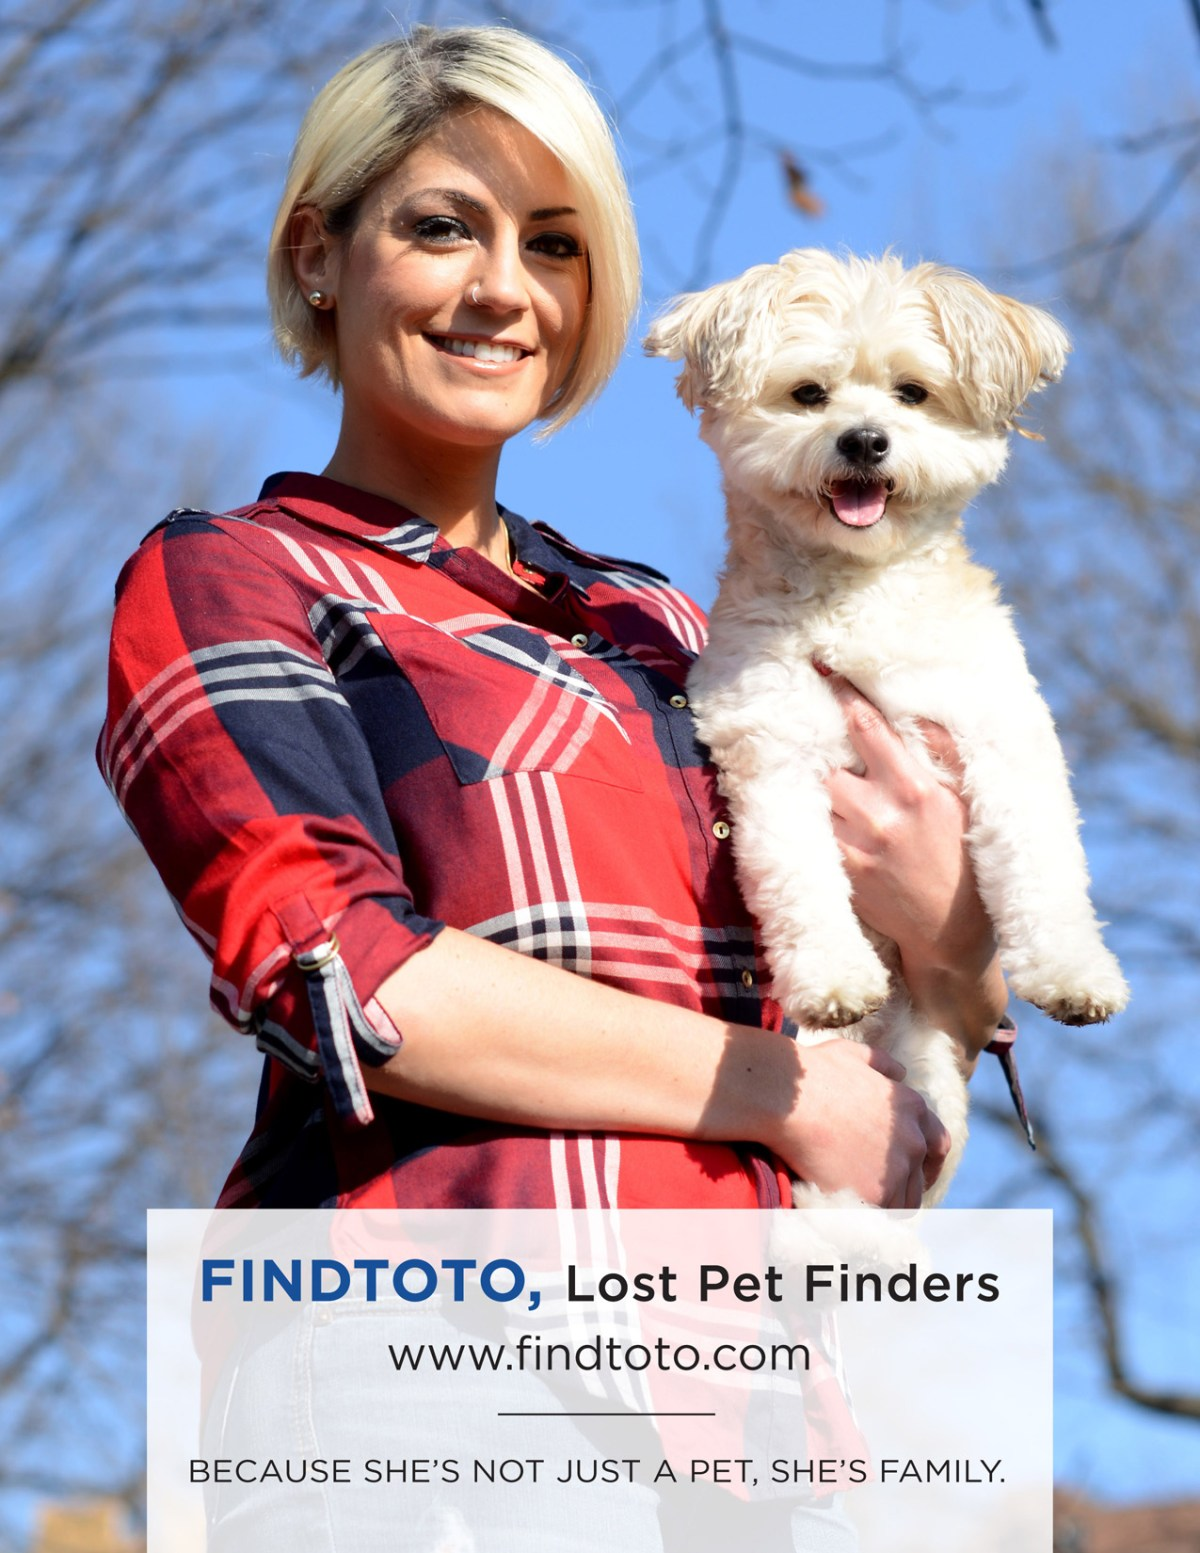 FindToto Lost Pet Finders